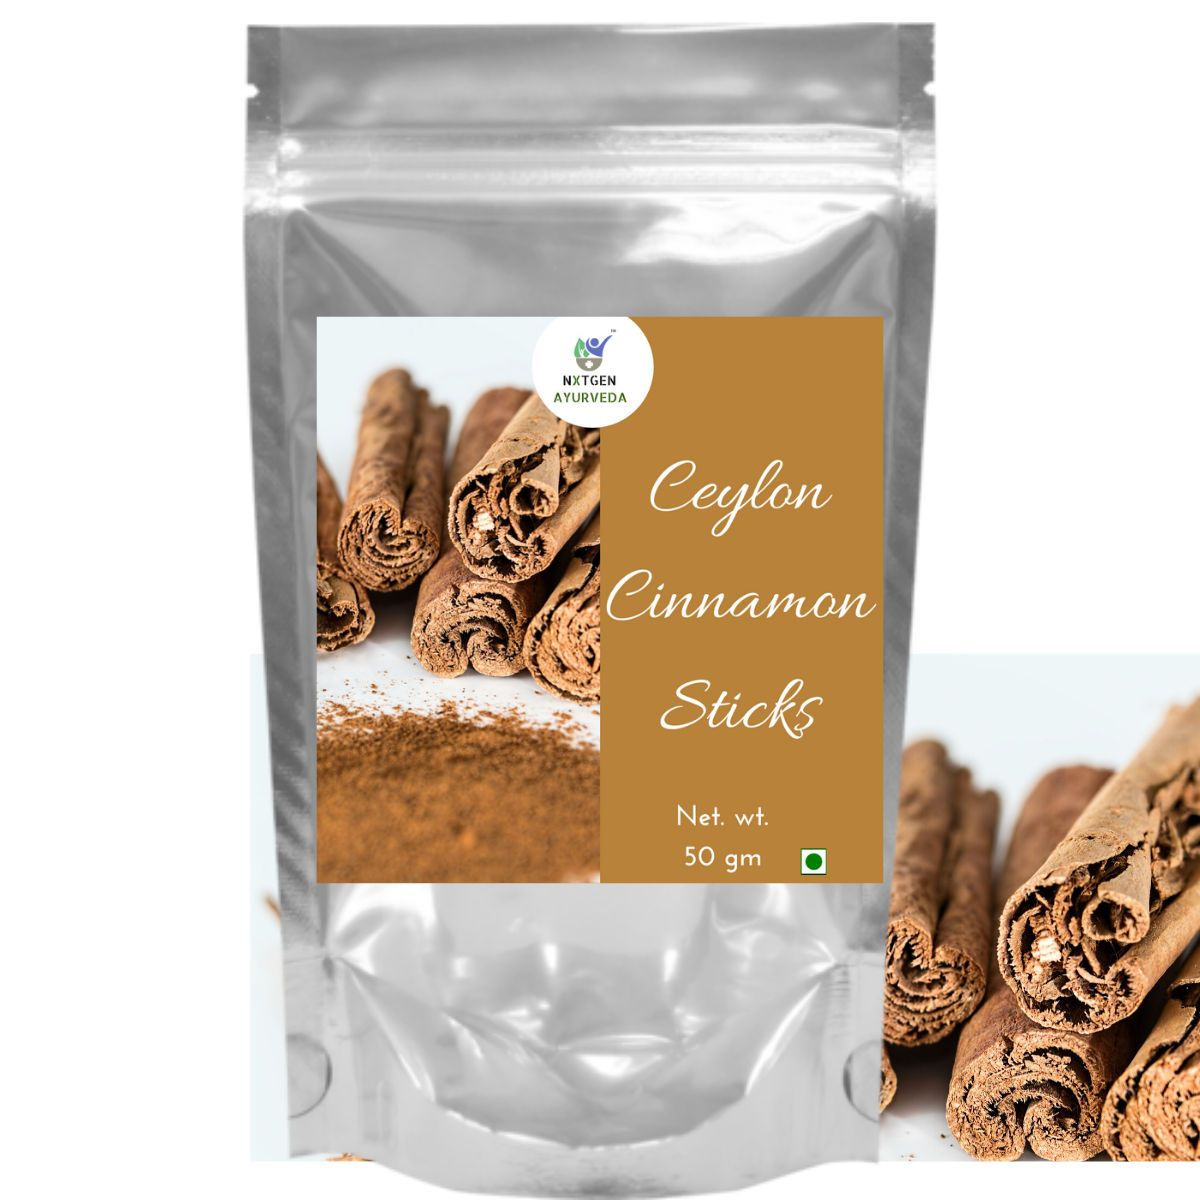 Ceylon Cinnamon Sticks (Pack of 2)